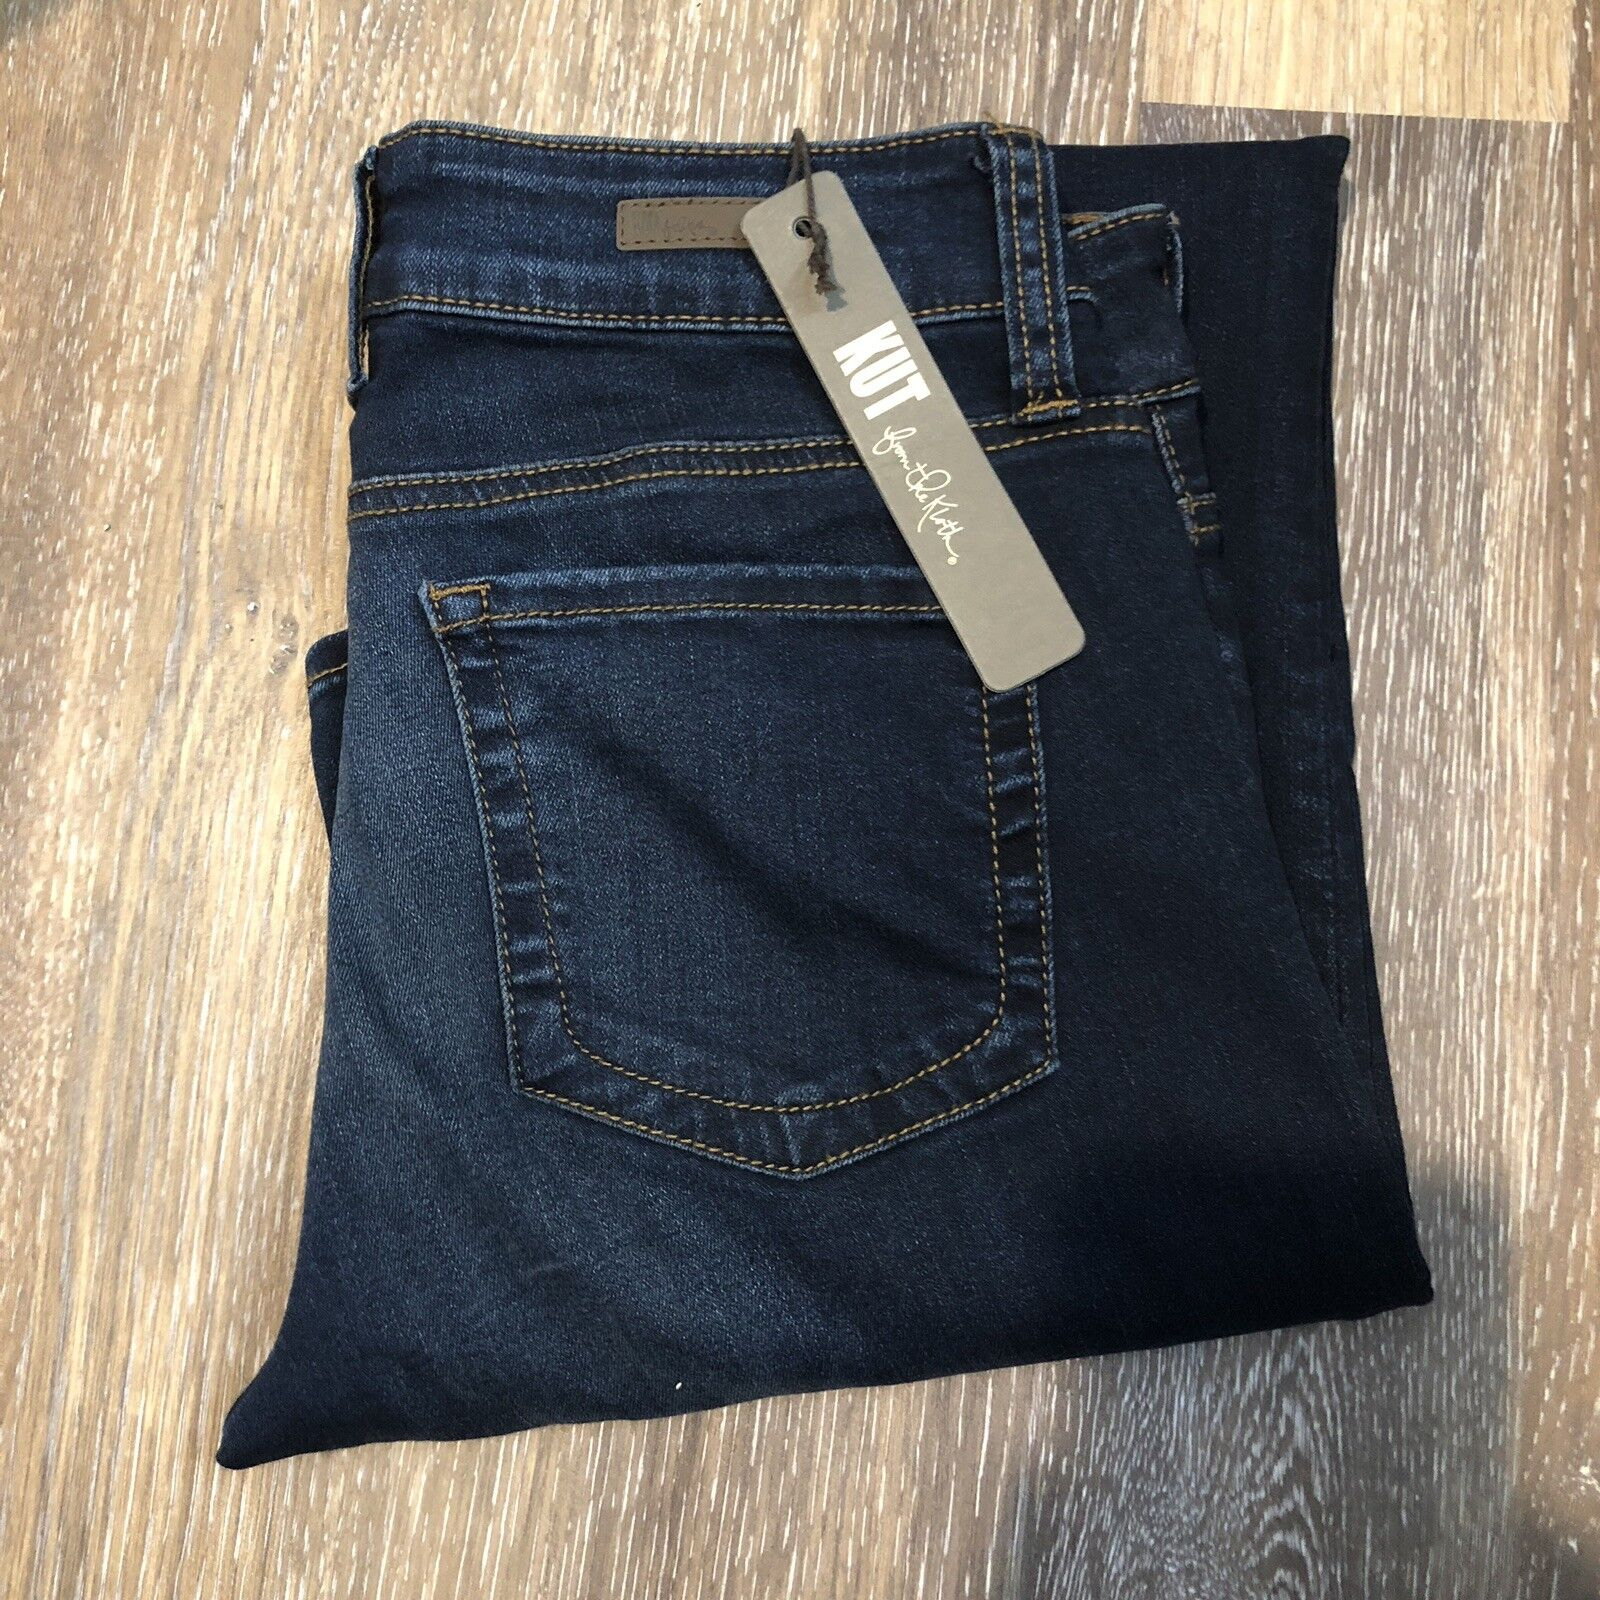 New Kut from the Kloth Women's Size 4 Natalie High Rise Bootcut bluee jeans